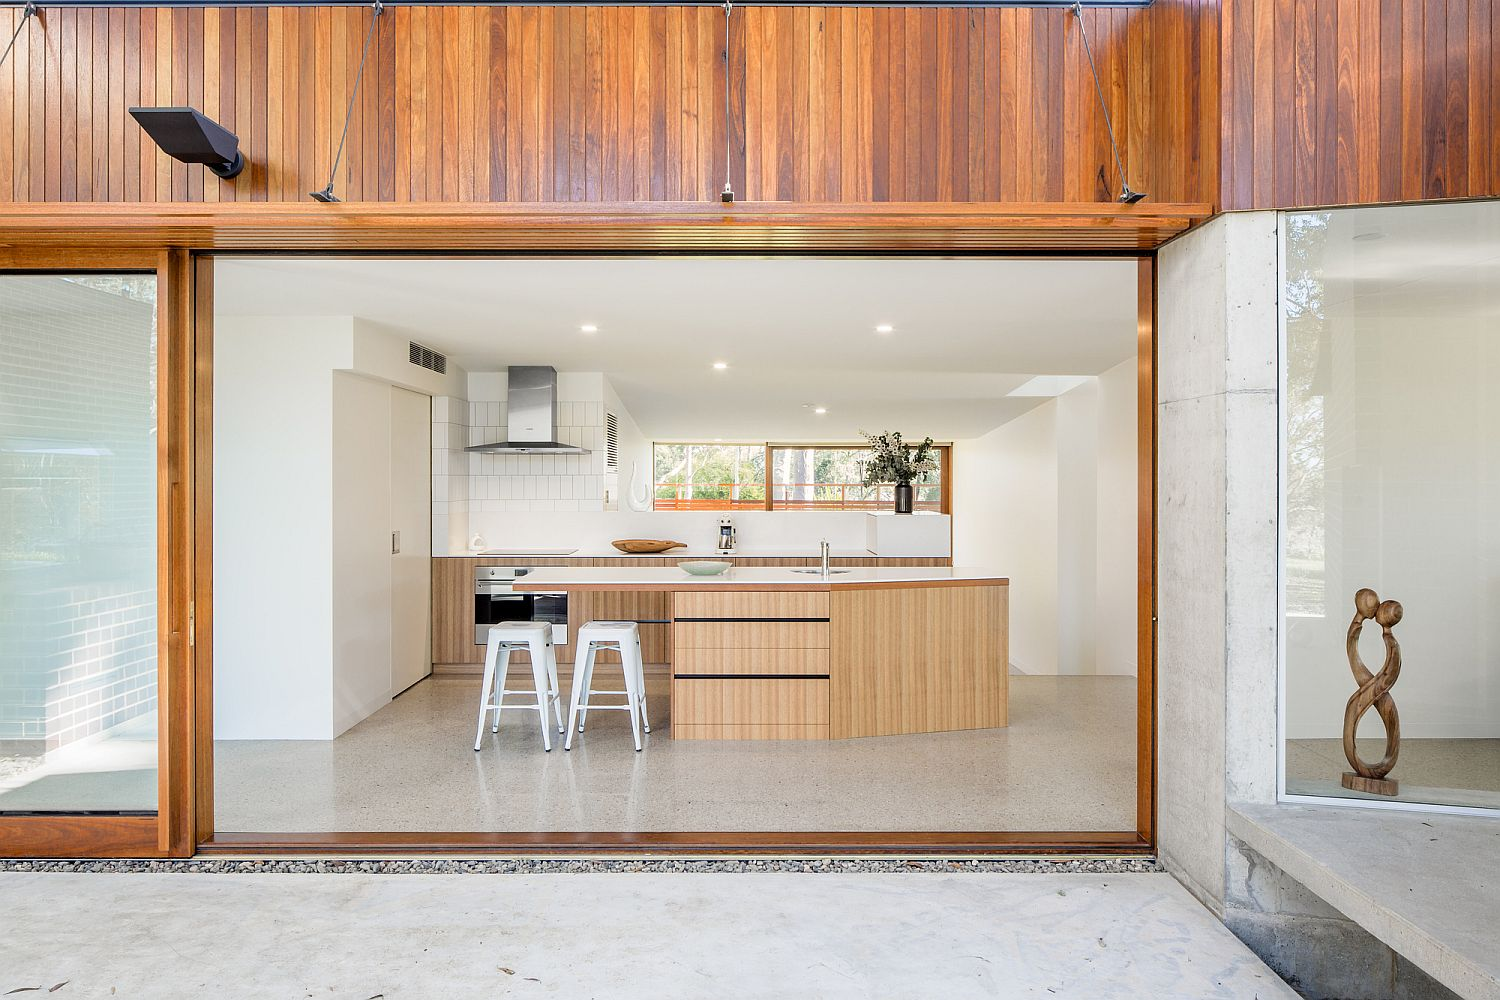 Sliding-glass-walls-with-wooden-frame-for-the-modern-kitchen-in-white